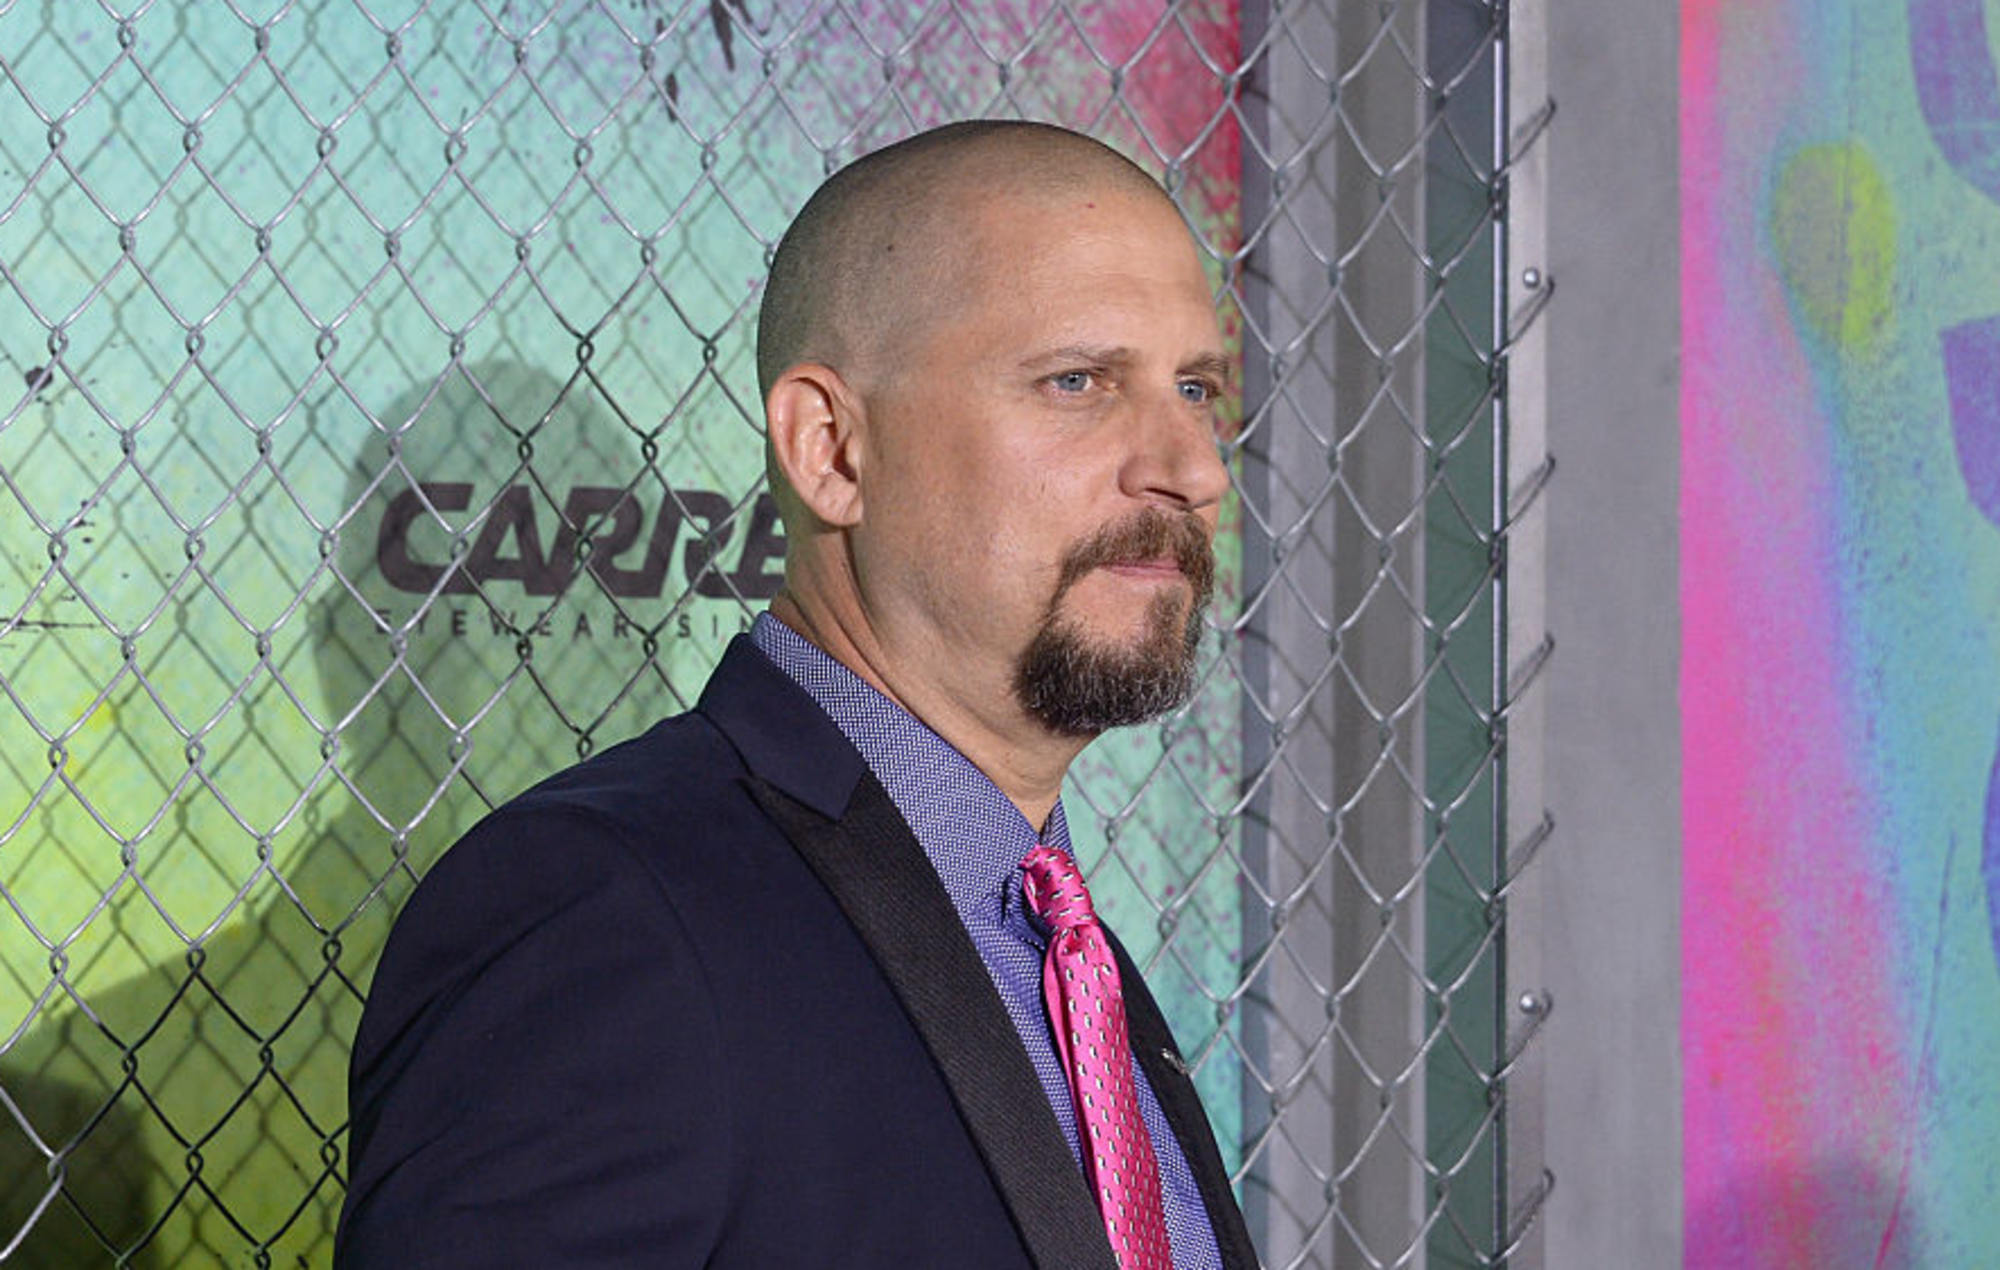 Suicide Squad' director David Ayer responds to #ReleaseTheAyerCut campaign